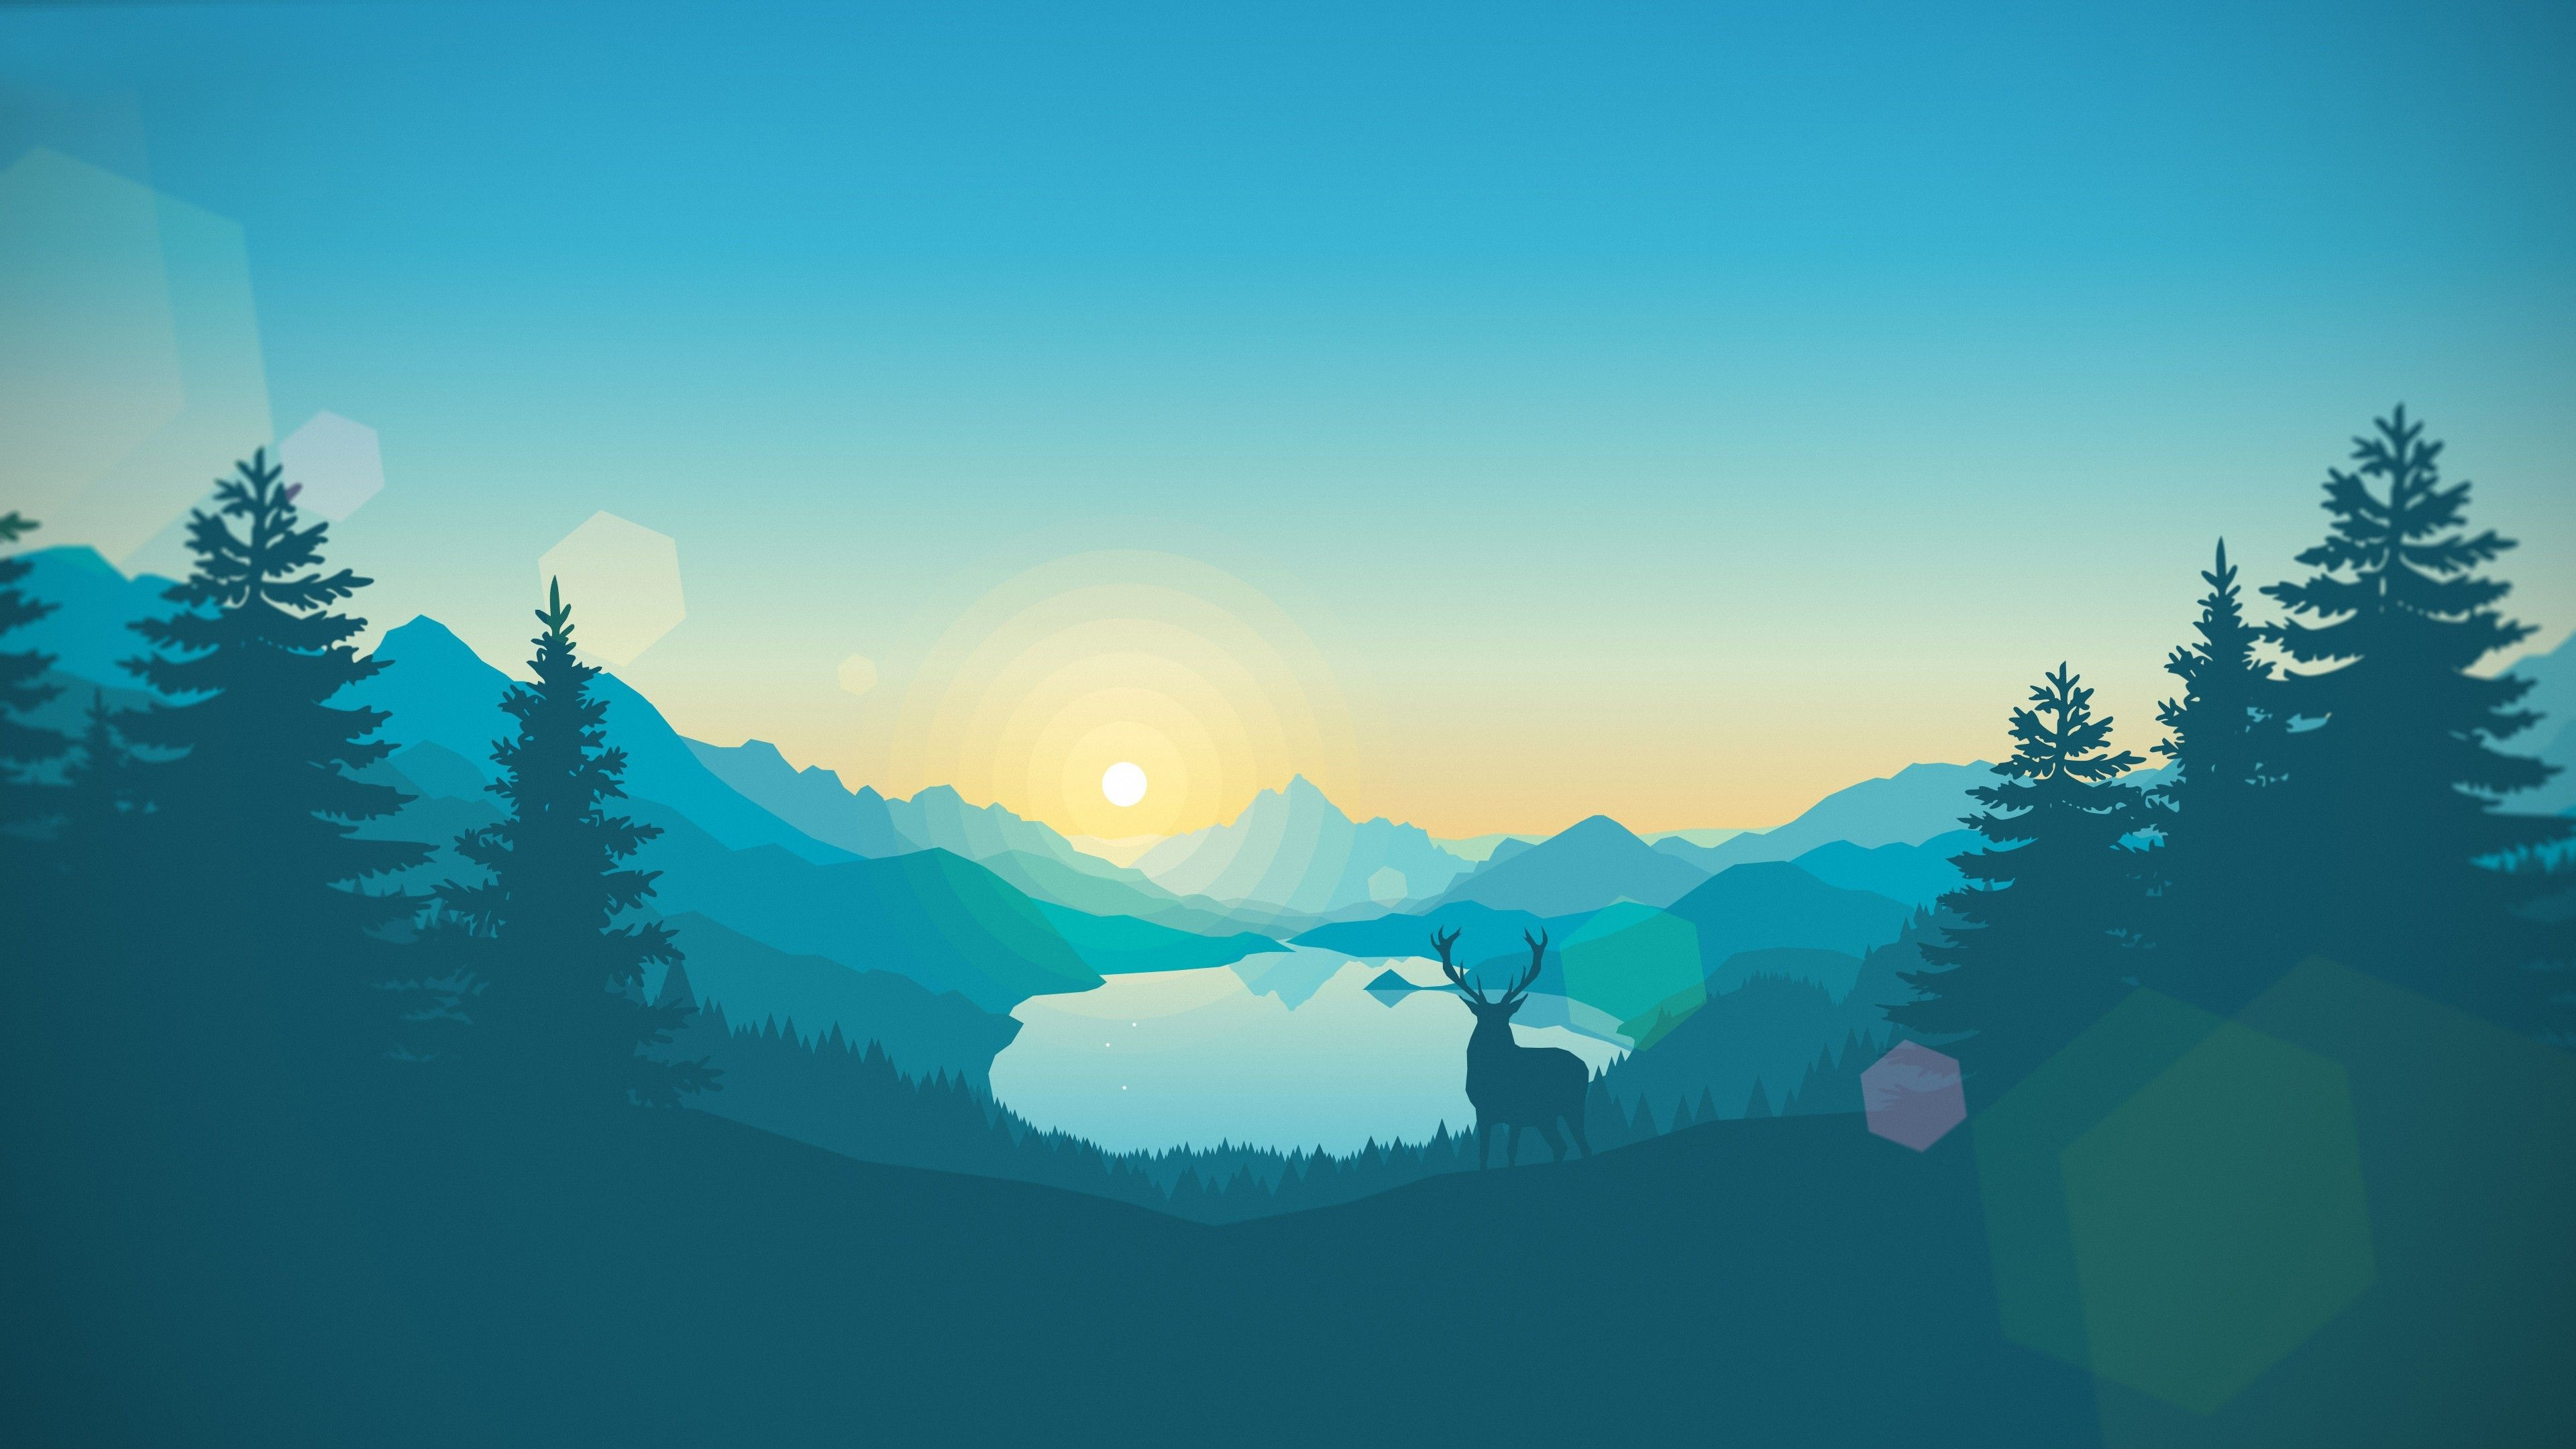 Firewatch Wallpaper Hd Download Landscape Wallpaper Wallpaper Pictures Nature Wallpaper